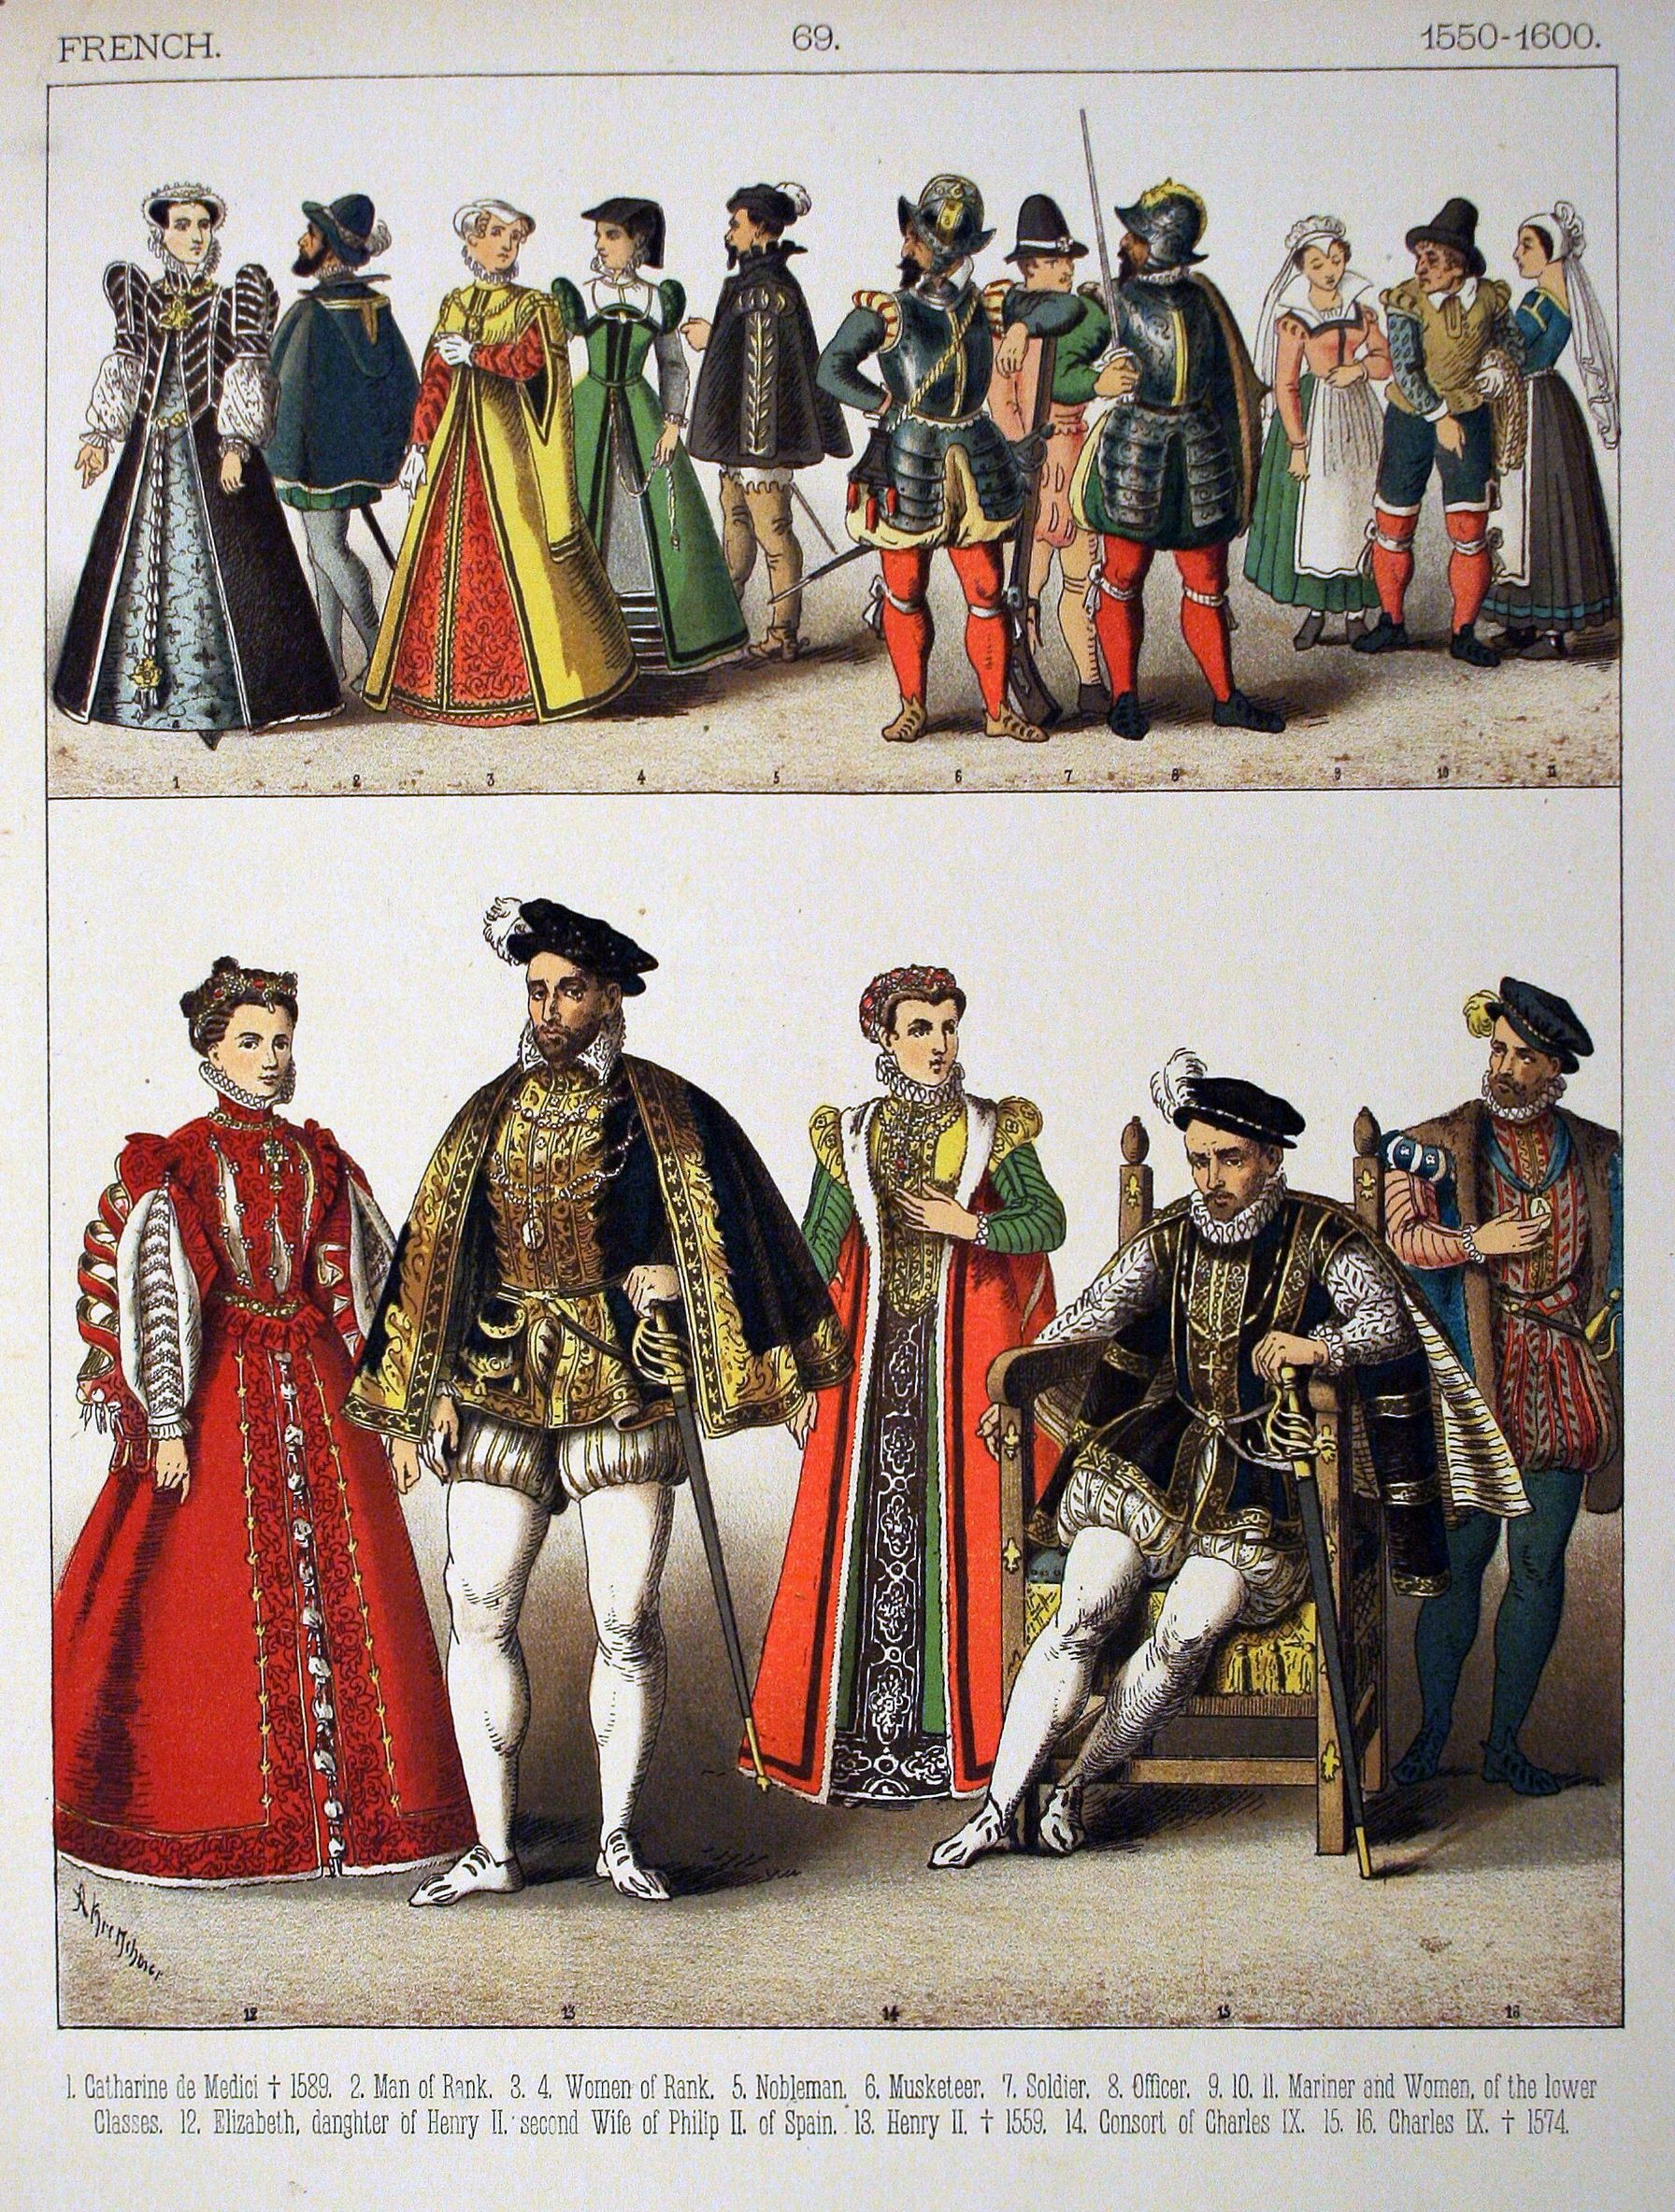 photos of the 1600s | Description 1550-1600, French. - 069 - Costumes of  All Nations (1882 .